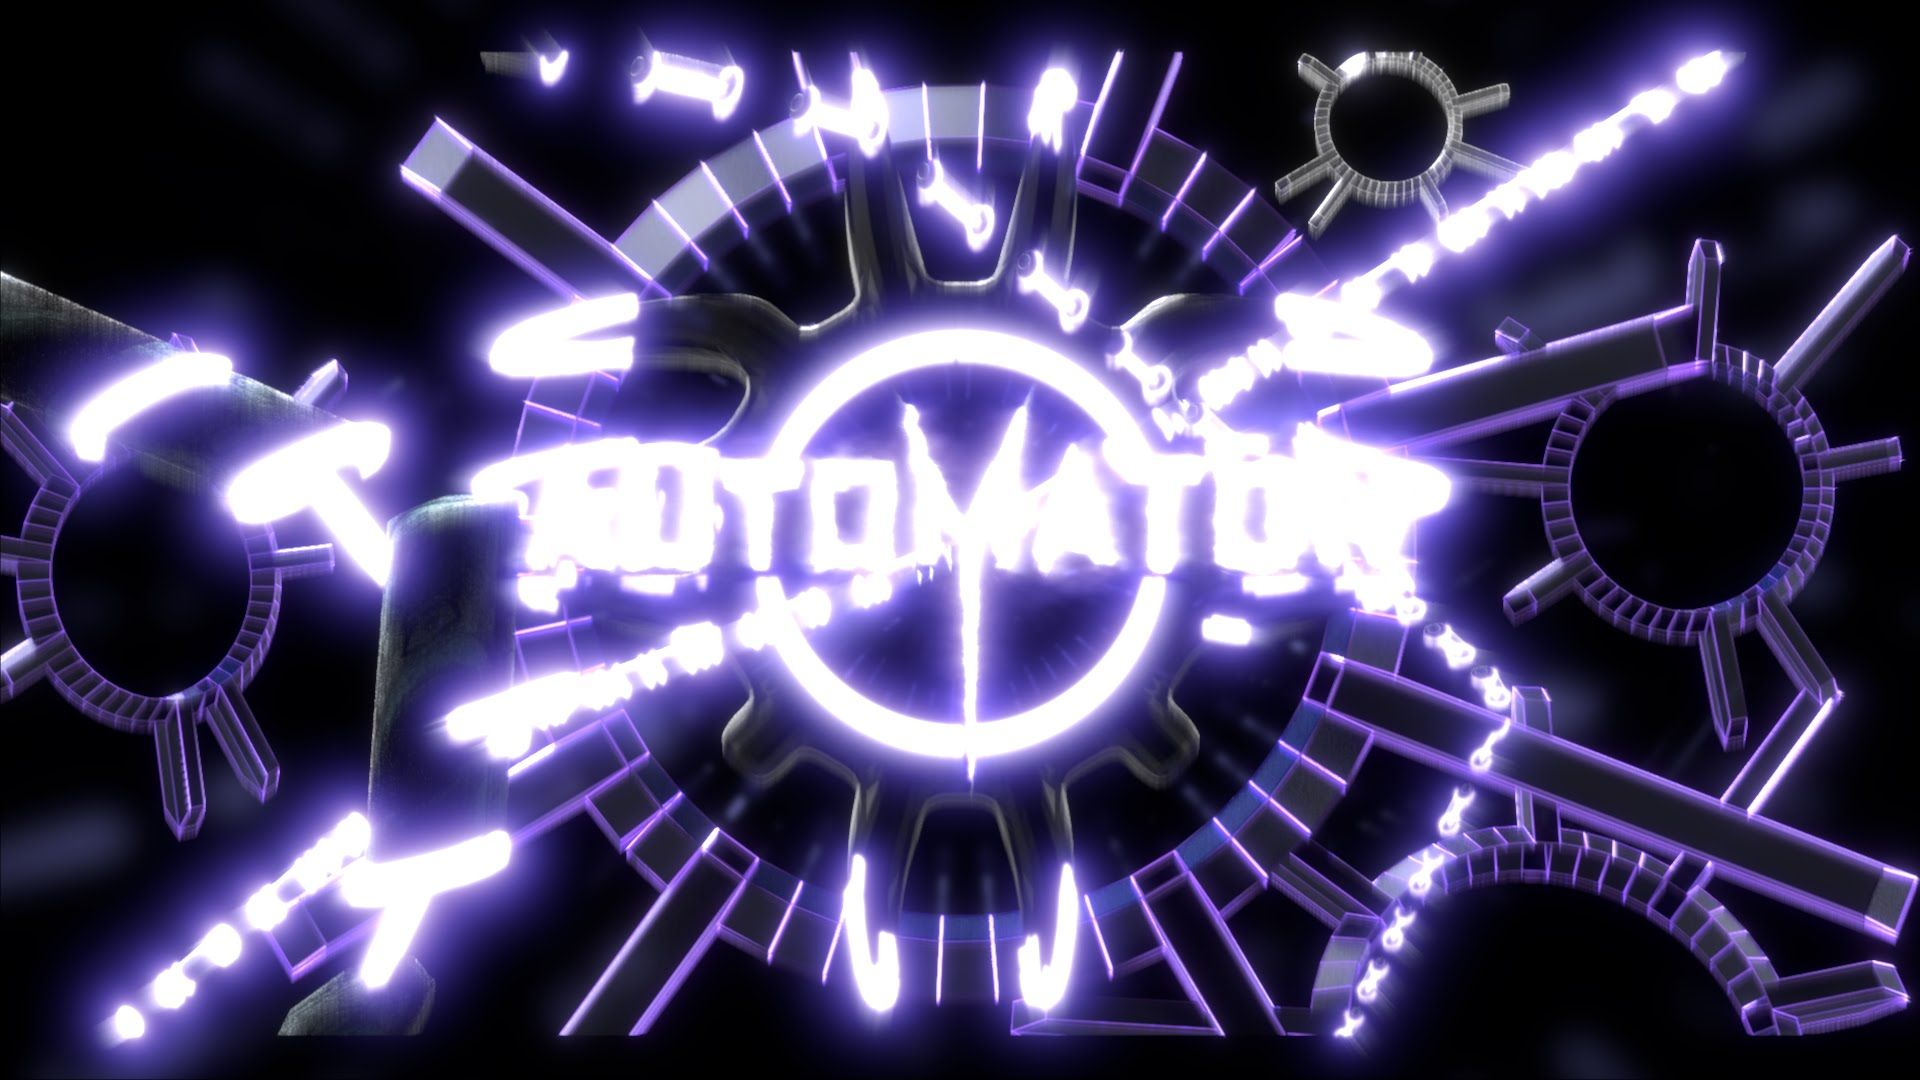 FREE Blender intro template - Automaton BLENDER INTRO TEMPLATE WEEK ...